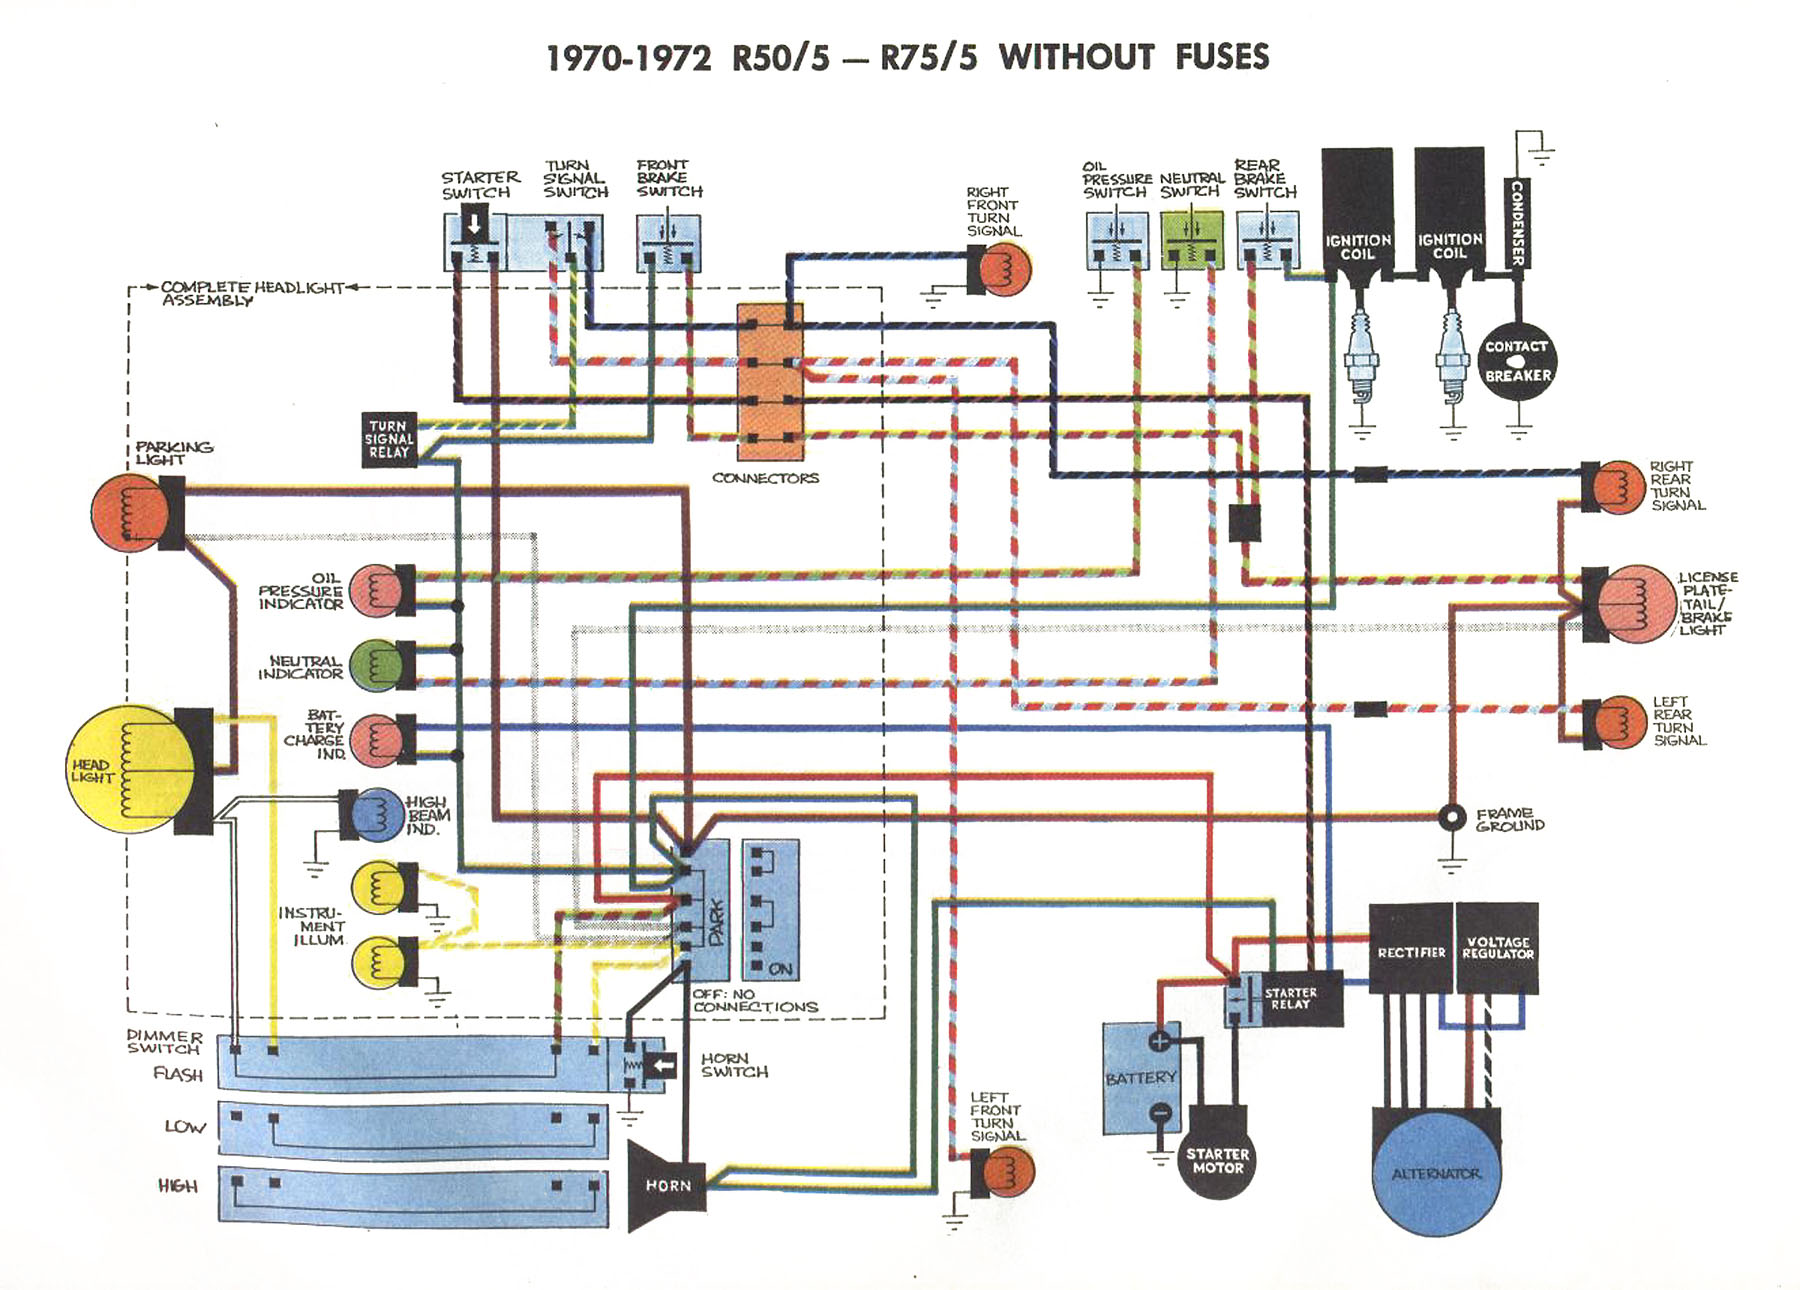 5_unfused_schematic 5 united articles wiring diagrams bmw r100rs gauge wiring diagram at creativeand.co